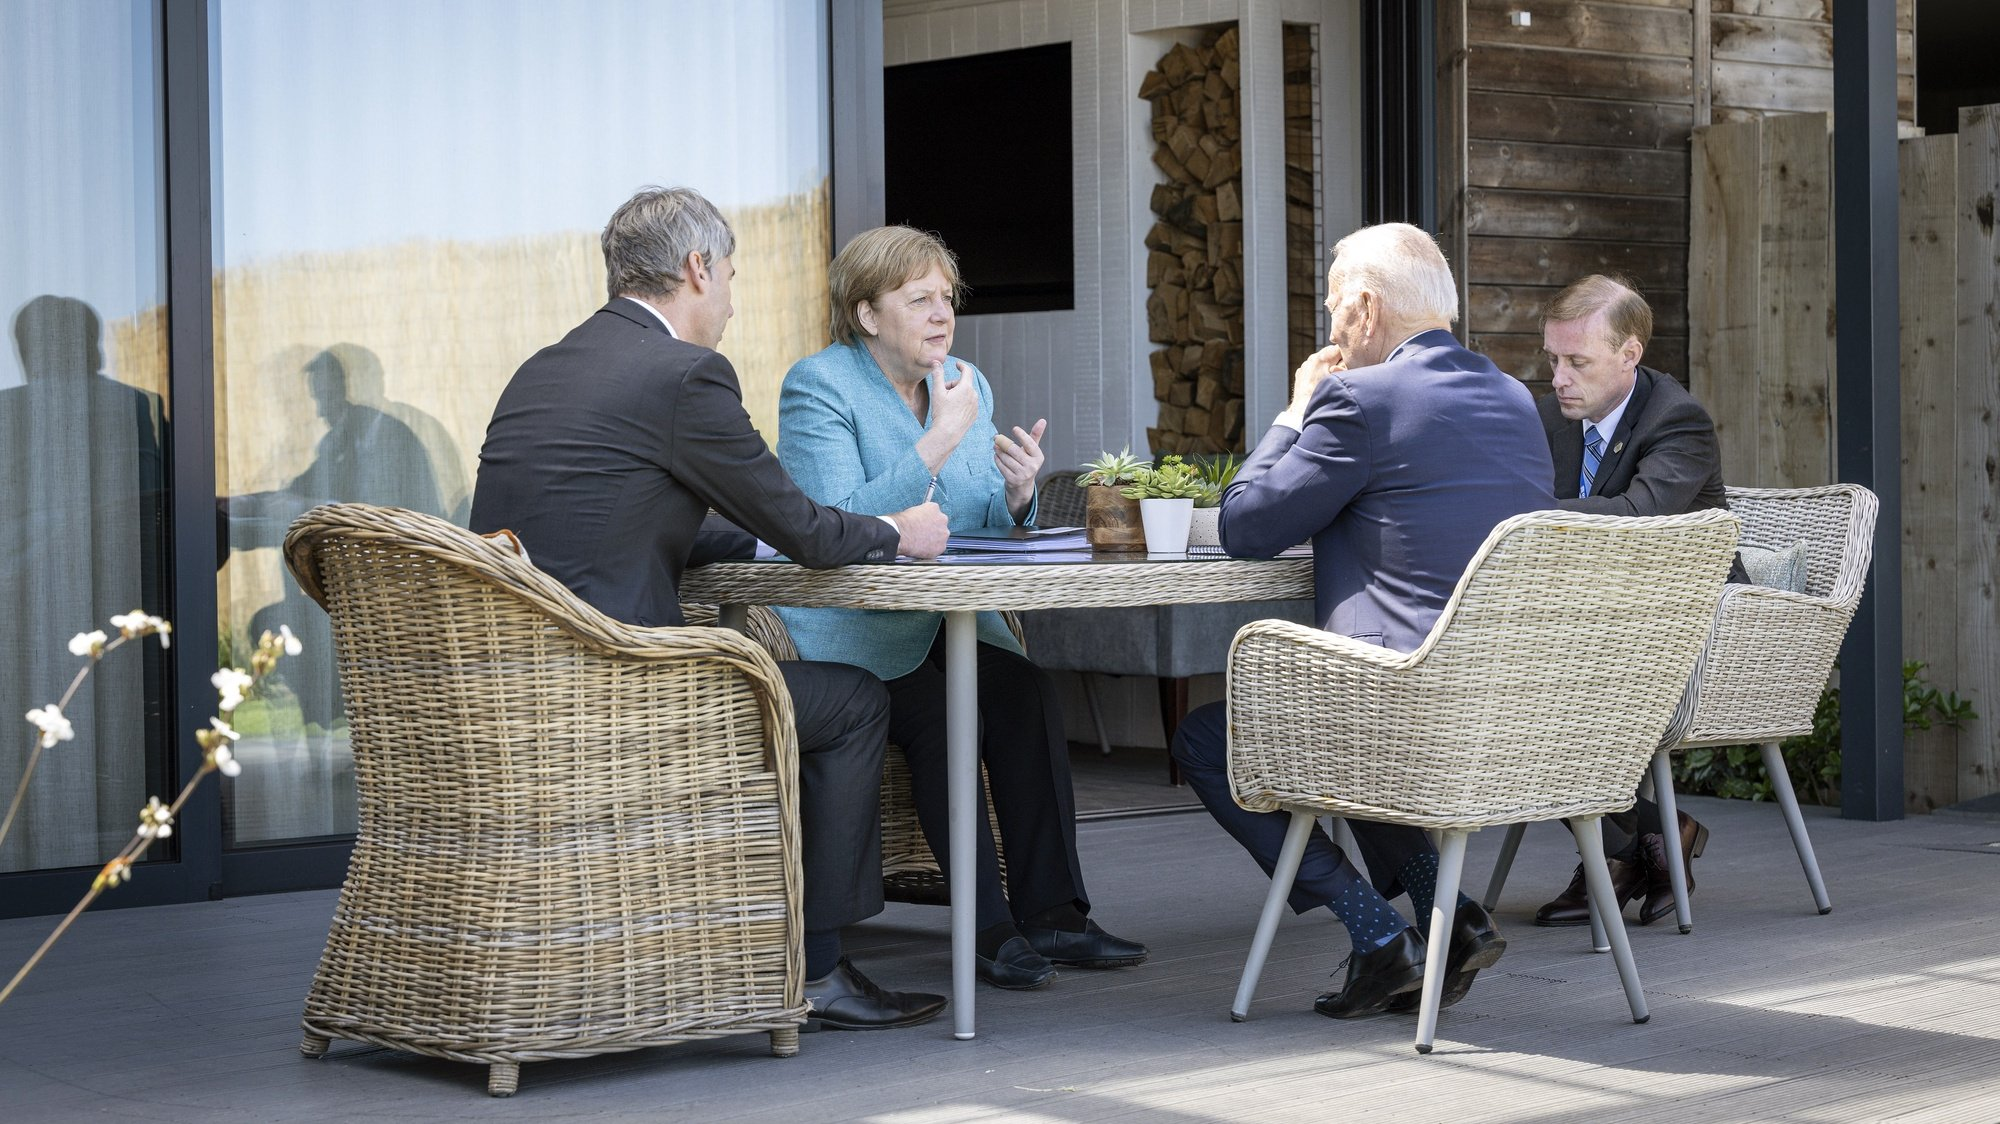 epa09264328 A handout photo made available by the German Government Press Office (BPA) shows German Chancellor Angela Merkel (2-L) and US President Joe Biden (2-R) at the beginning of their meeting on the sidelines of the G7 summit, in St. Ives, Cornwall, Britain, 12 June 2021. In picture attending the meeting are foreign policy advisor to Chancellor Merkel, Jan Hecker (L) and US National Security Advisor Jake Sullivan (R).  EPA/GUIDO BERGMANN/BPA HANDOUT  HANDOUT EDITORIAL USE ONLY/NO SALES